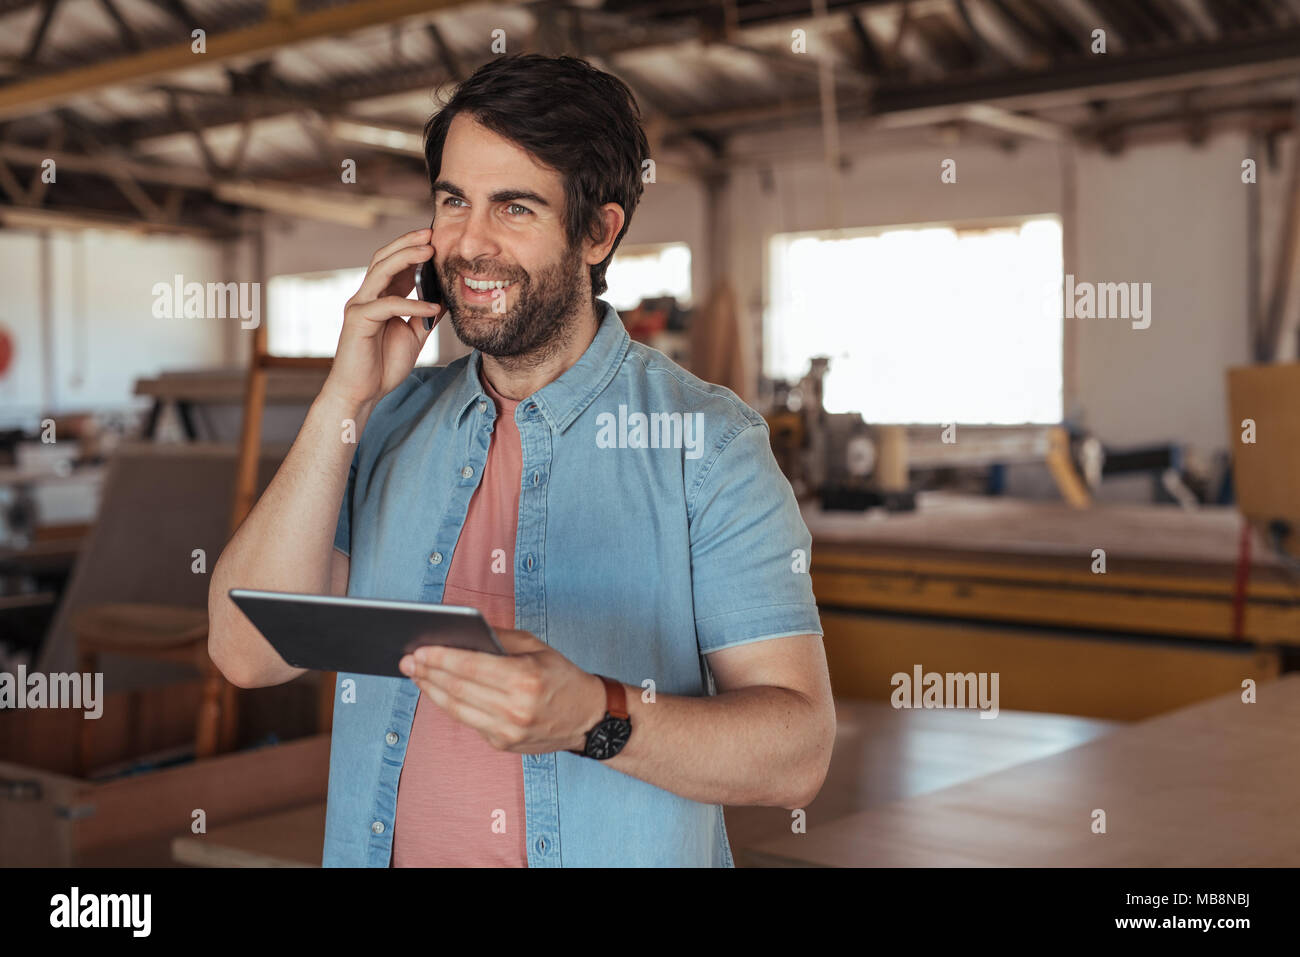 Smiling woodworker talking on his cellphone and using a tablet - Stock Image